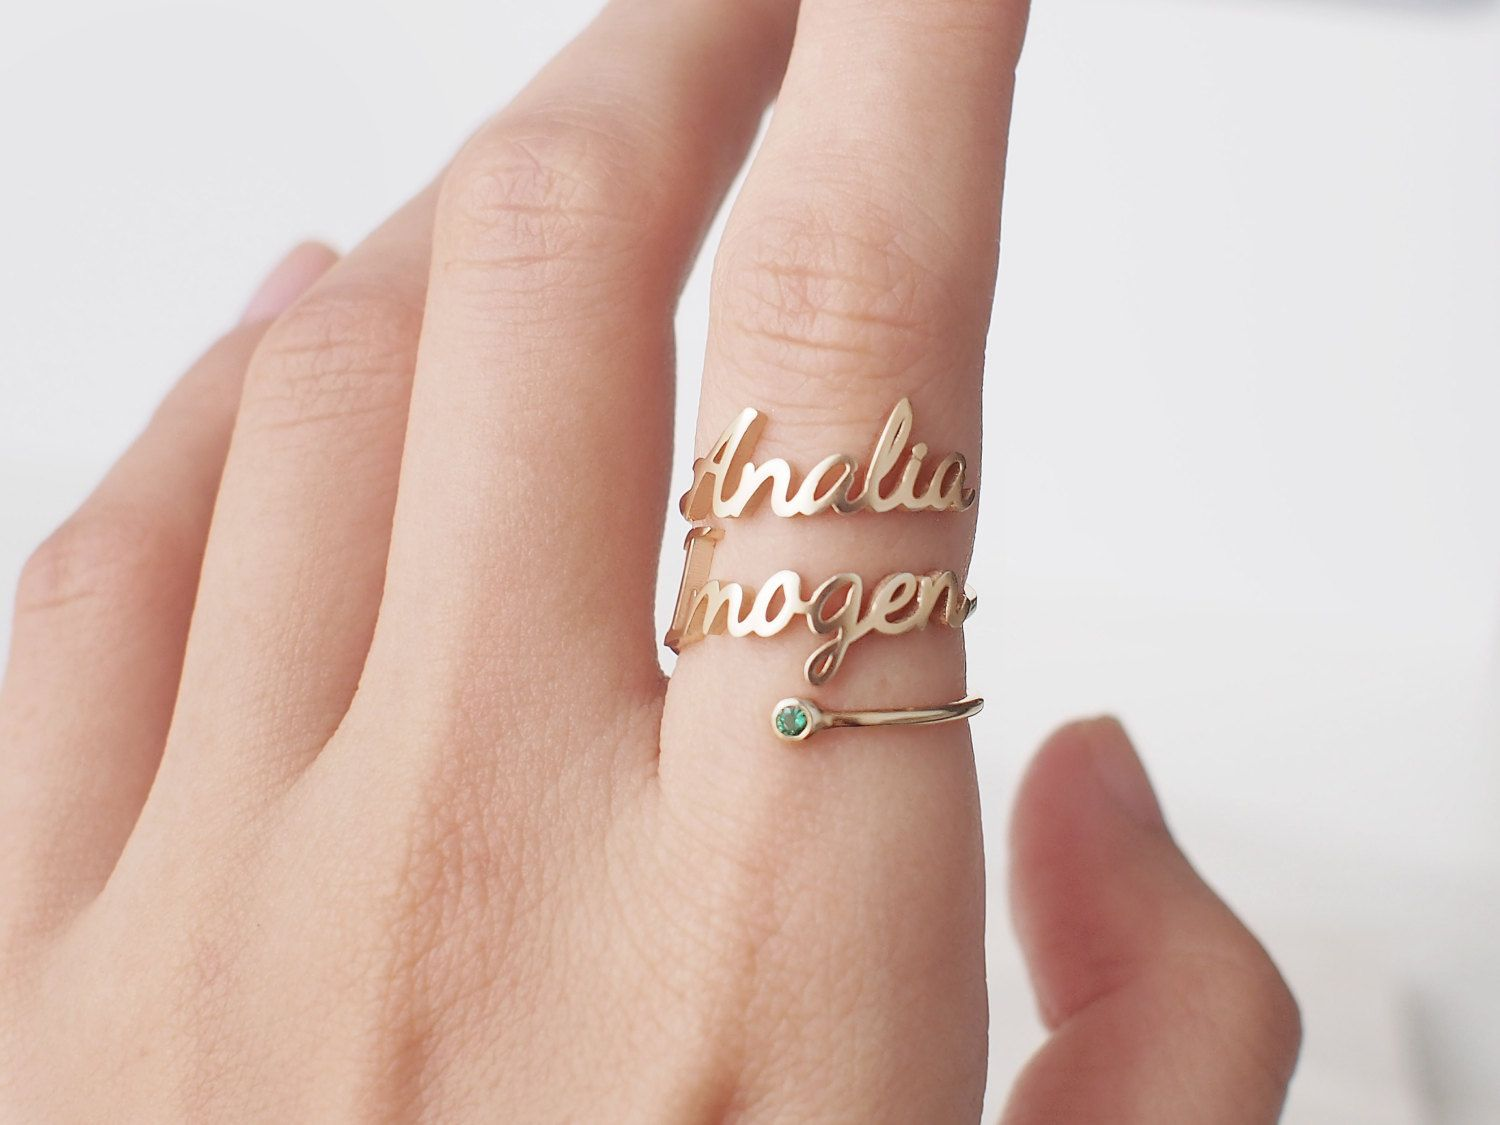 c1a92dba1 Double Name Ring with Birthstone Custom Name by GracePersonalized ...